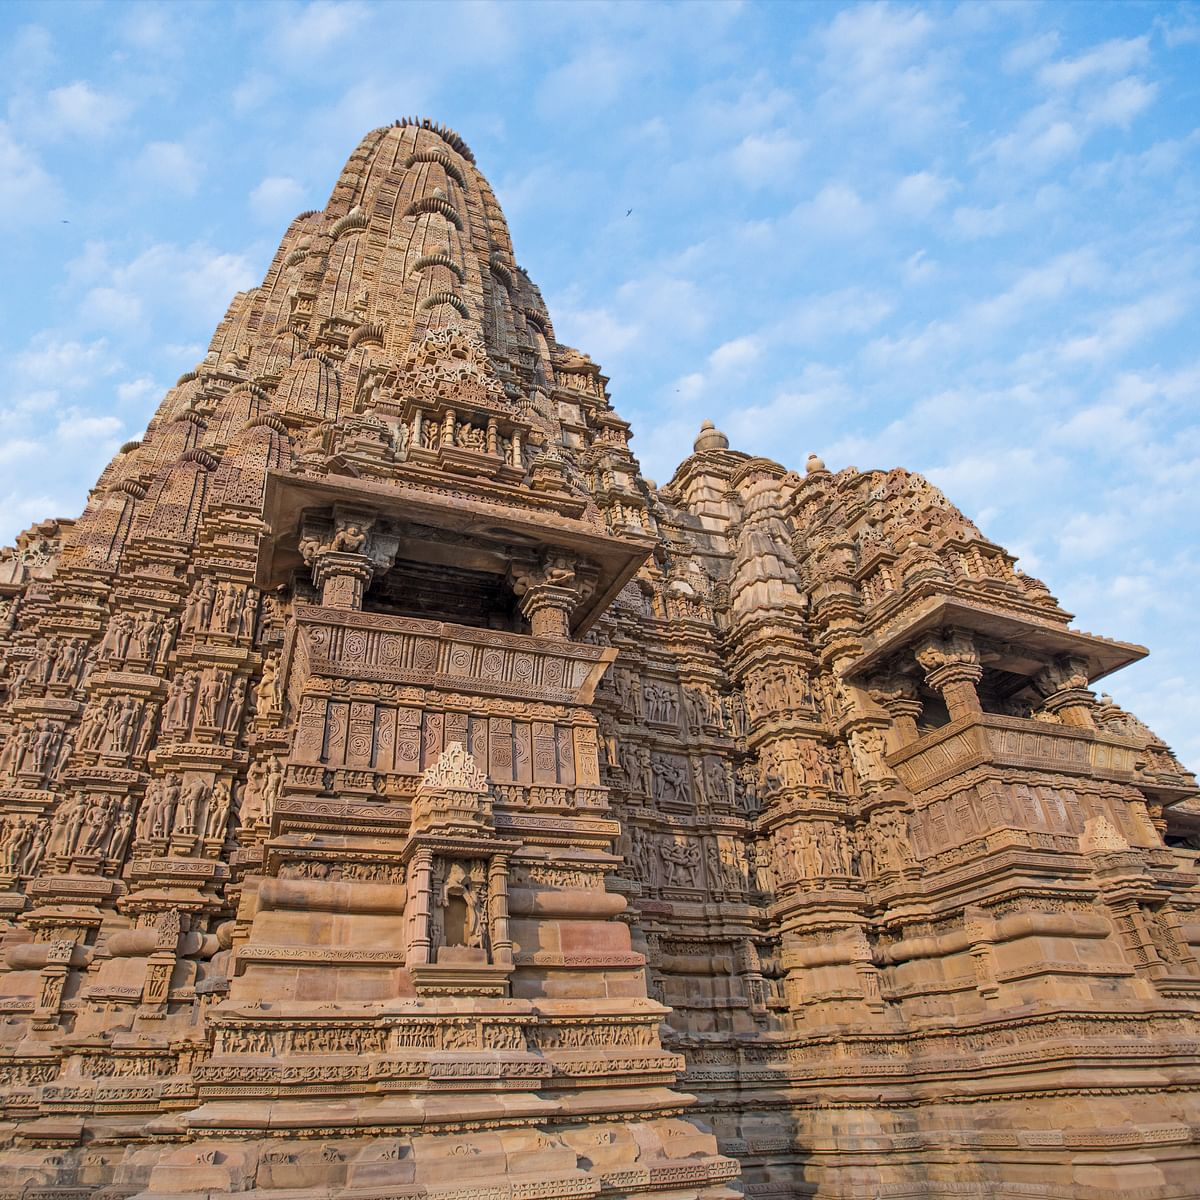 The Kandariya Mahadeva Temple, the largest and most ornate temple in the medieval temple group found at Khajuraho in Madhya Pradesh.